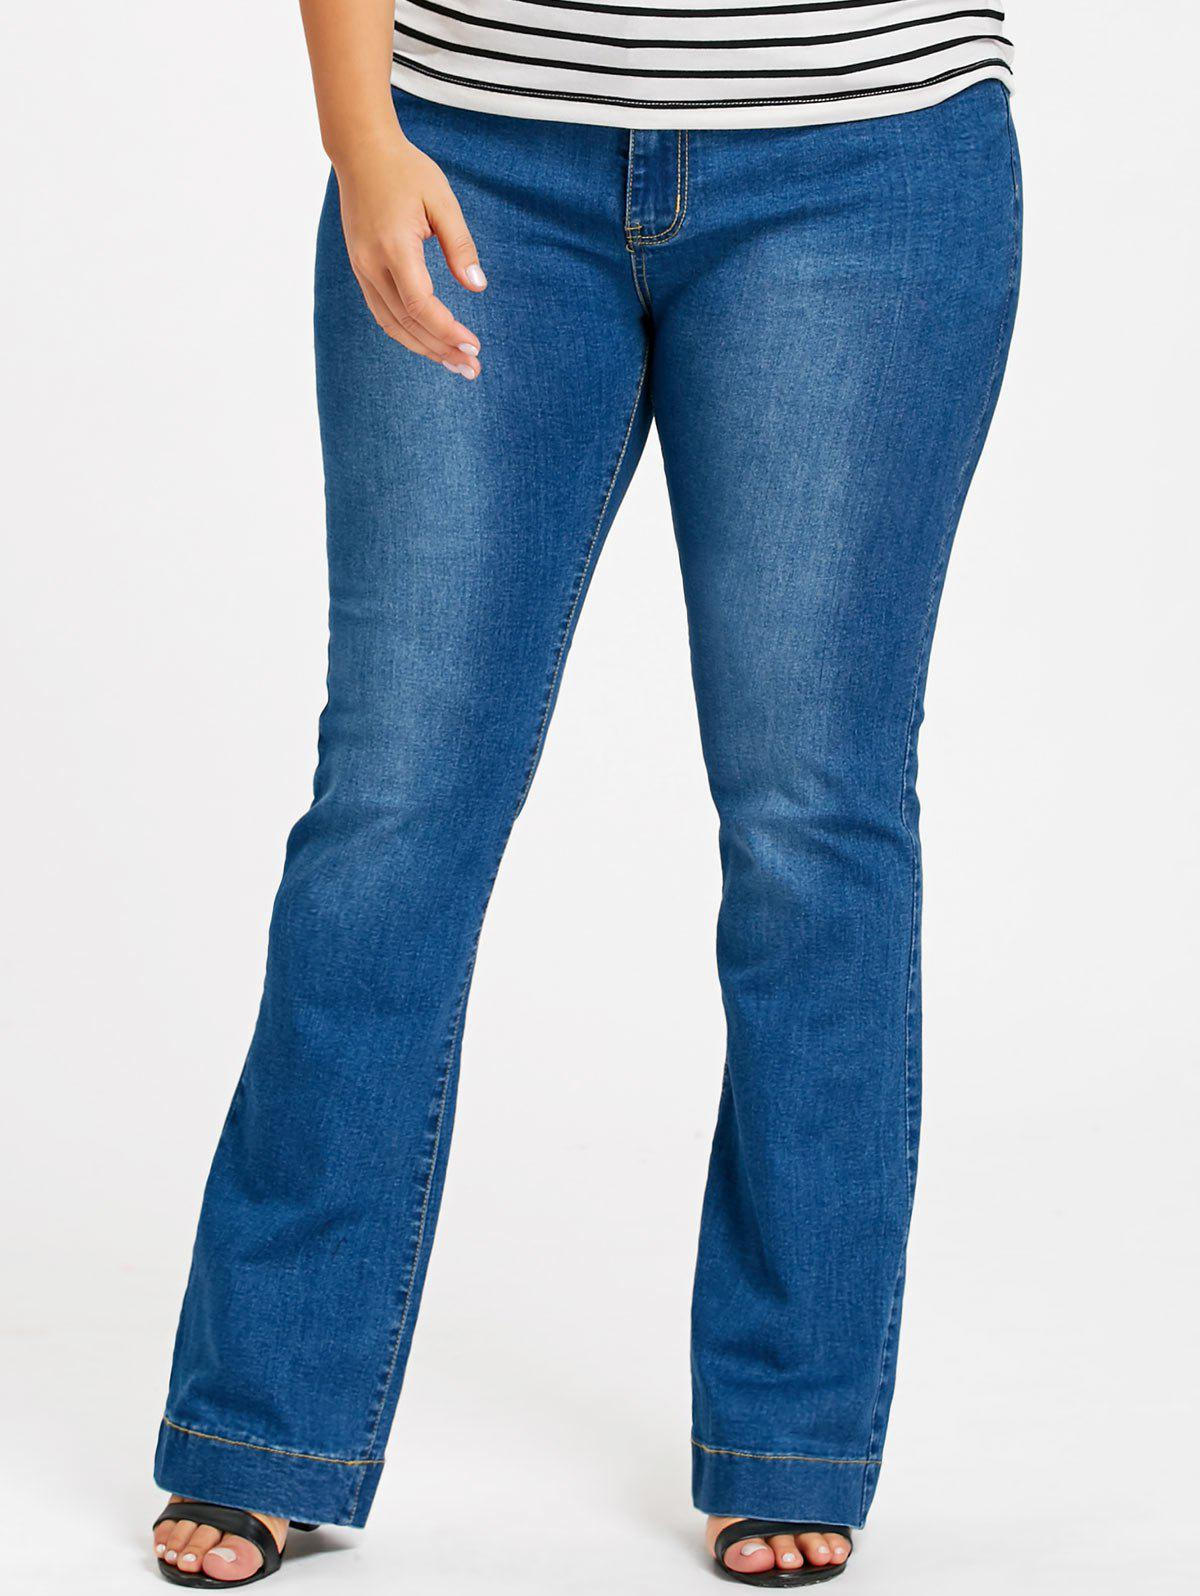 Plus Size Longline Flare JeansWOMEN<br><br>Size: 4XL; Color: DENIM BLUE; Style: Casual; Length: Overlength; Material: Polyester; Fit Type: Regular; Waist Type: Mid; Closure Type: Zipper Fly; Pattern Type: Solid; Pant Style: Flare Pants; Weight: 0.6400kg; Package Contents: 1 x Jeans;